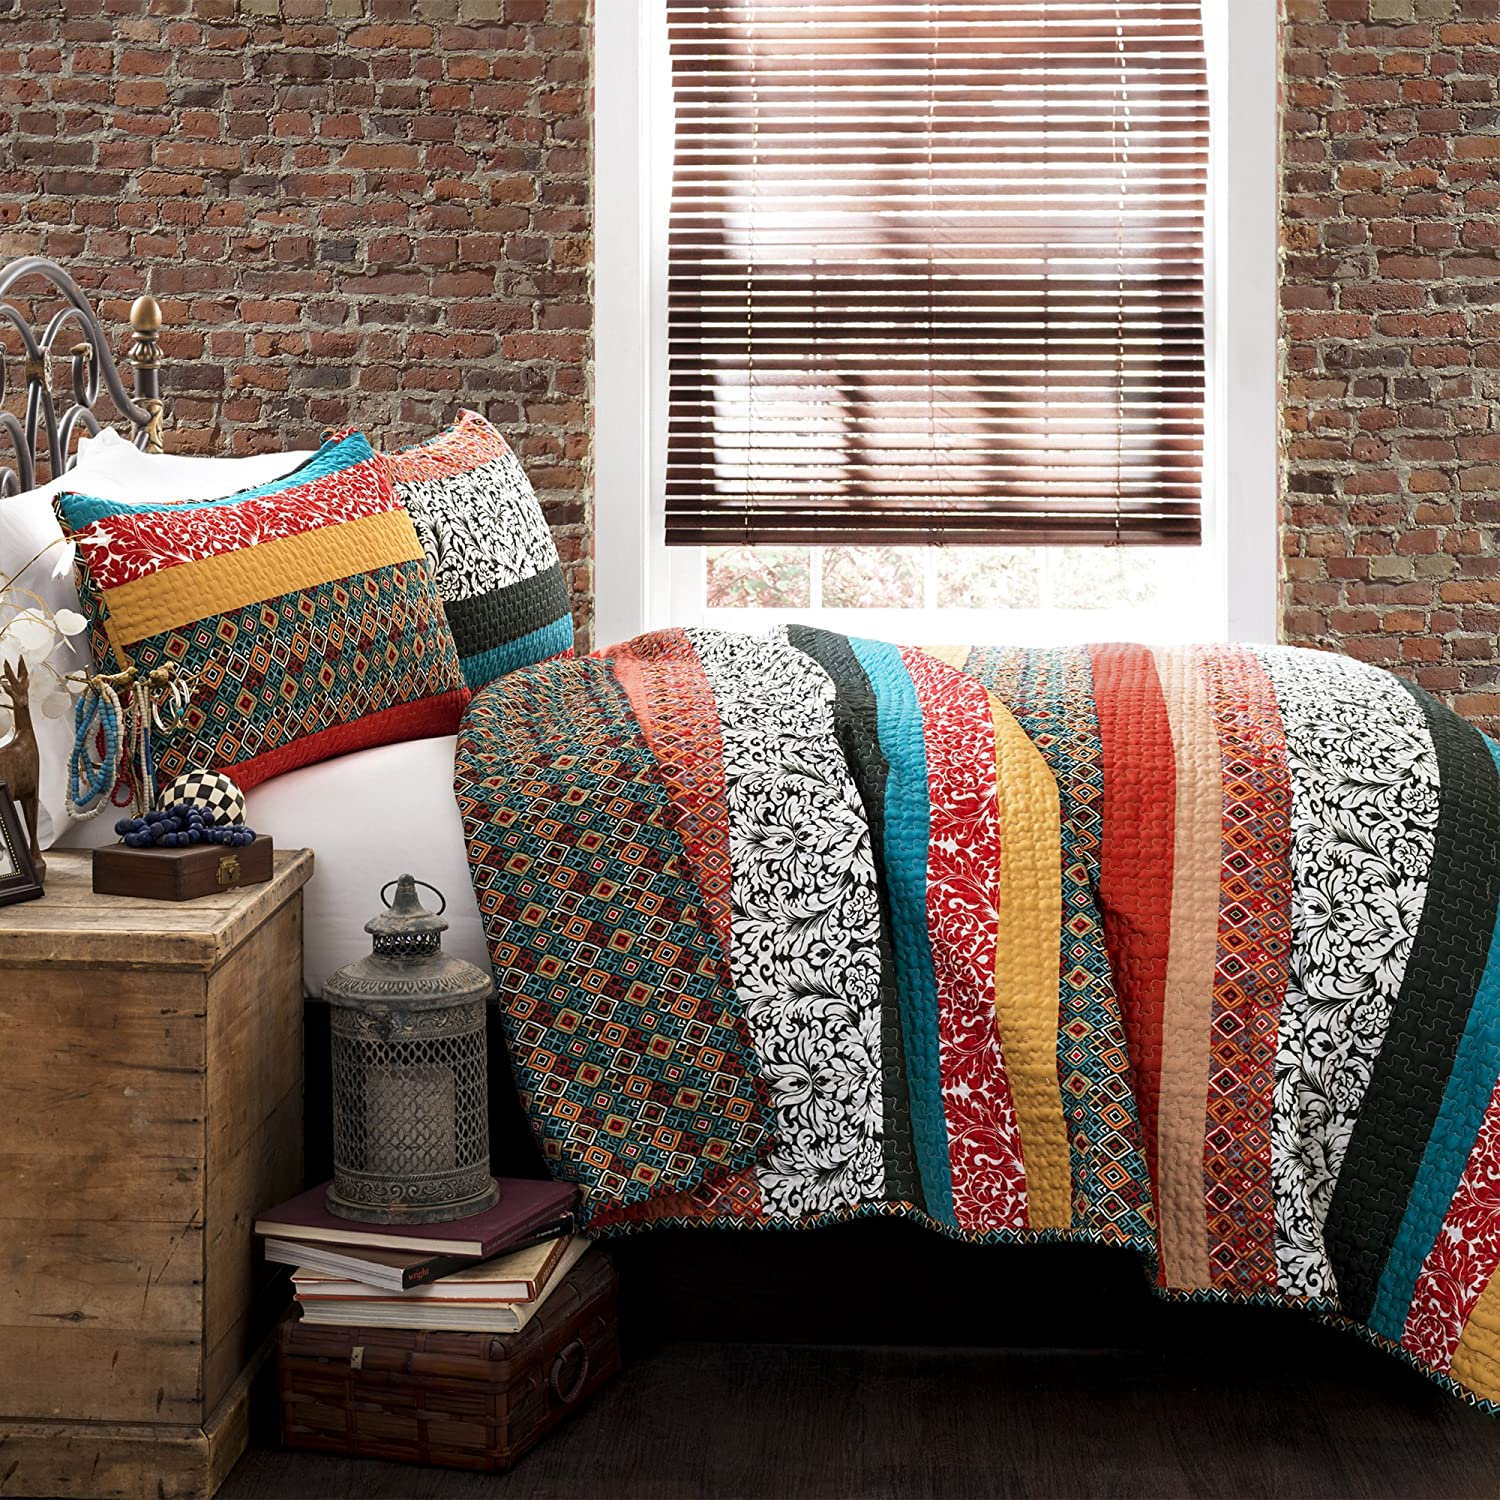 Lush Decor Boho Stripe Quilt Reversible 3 Piece Bohemian Design Bedding Set - King - Turquoise and Tangerine